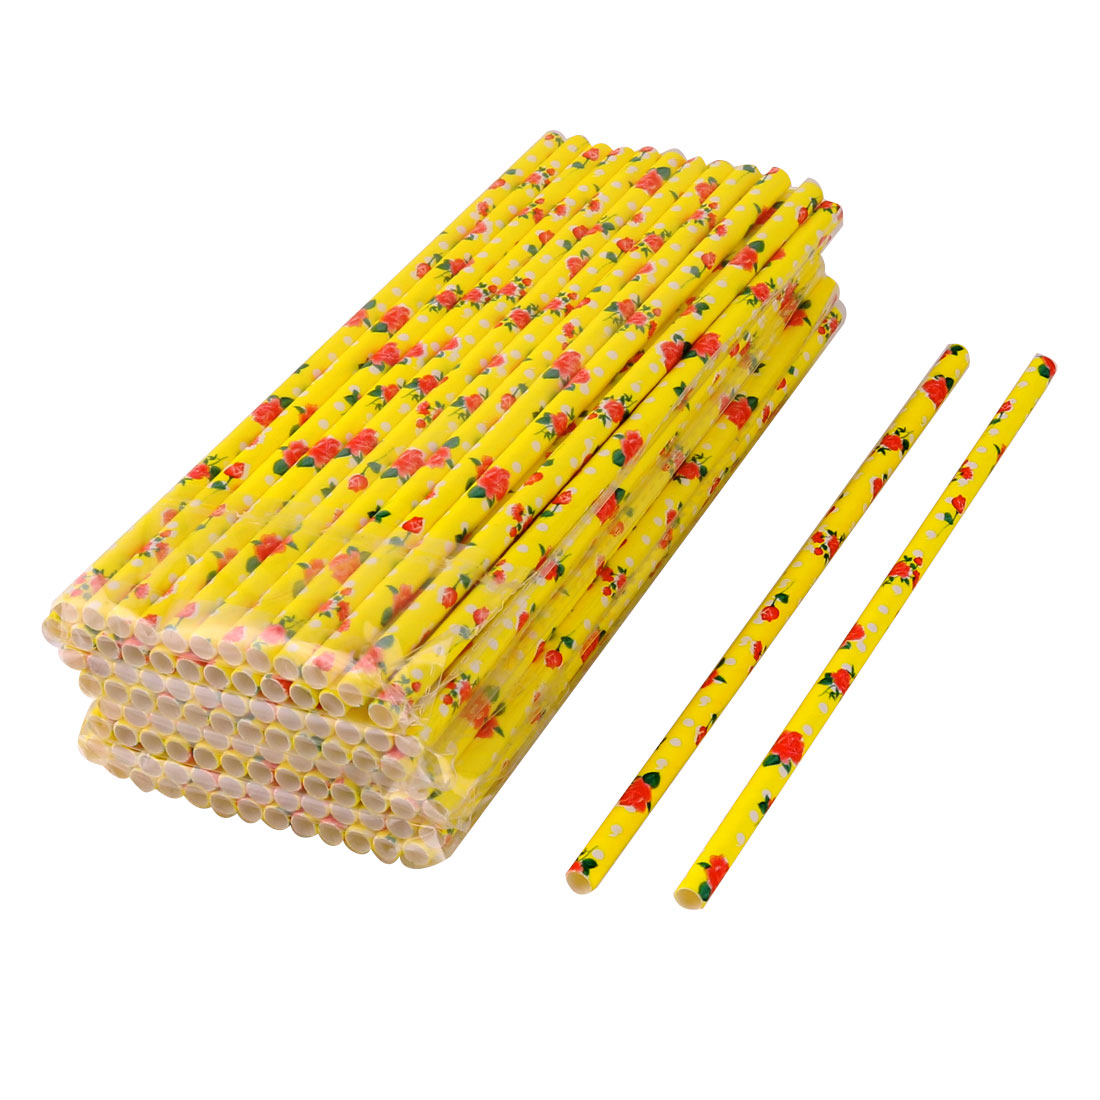 Unique Bargains Home Paper Flower Print Drinking Juice Milk Water Straw Yellow 0.6cm Dia 100pcs